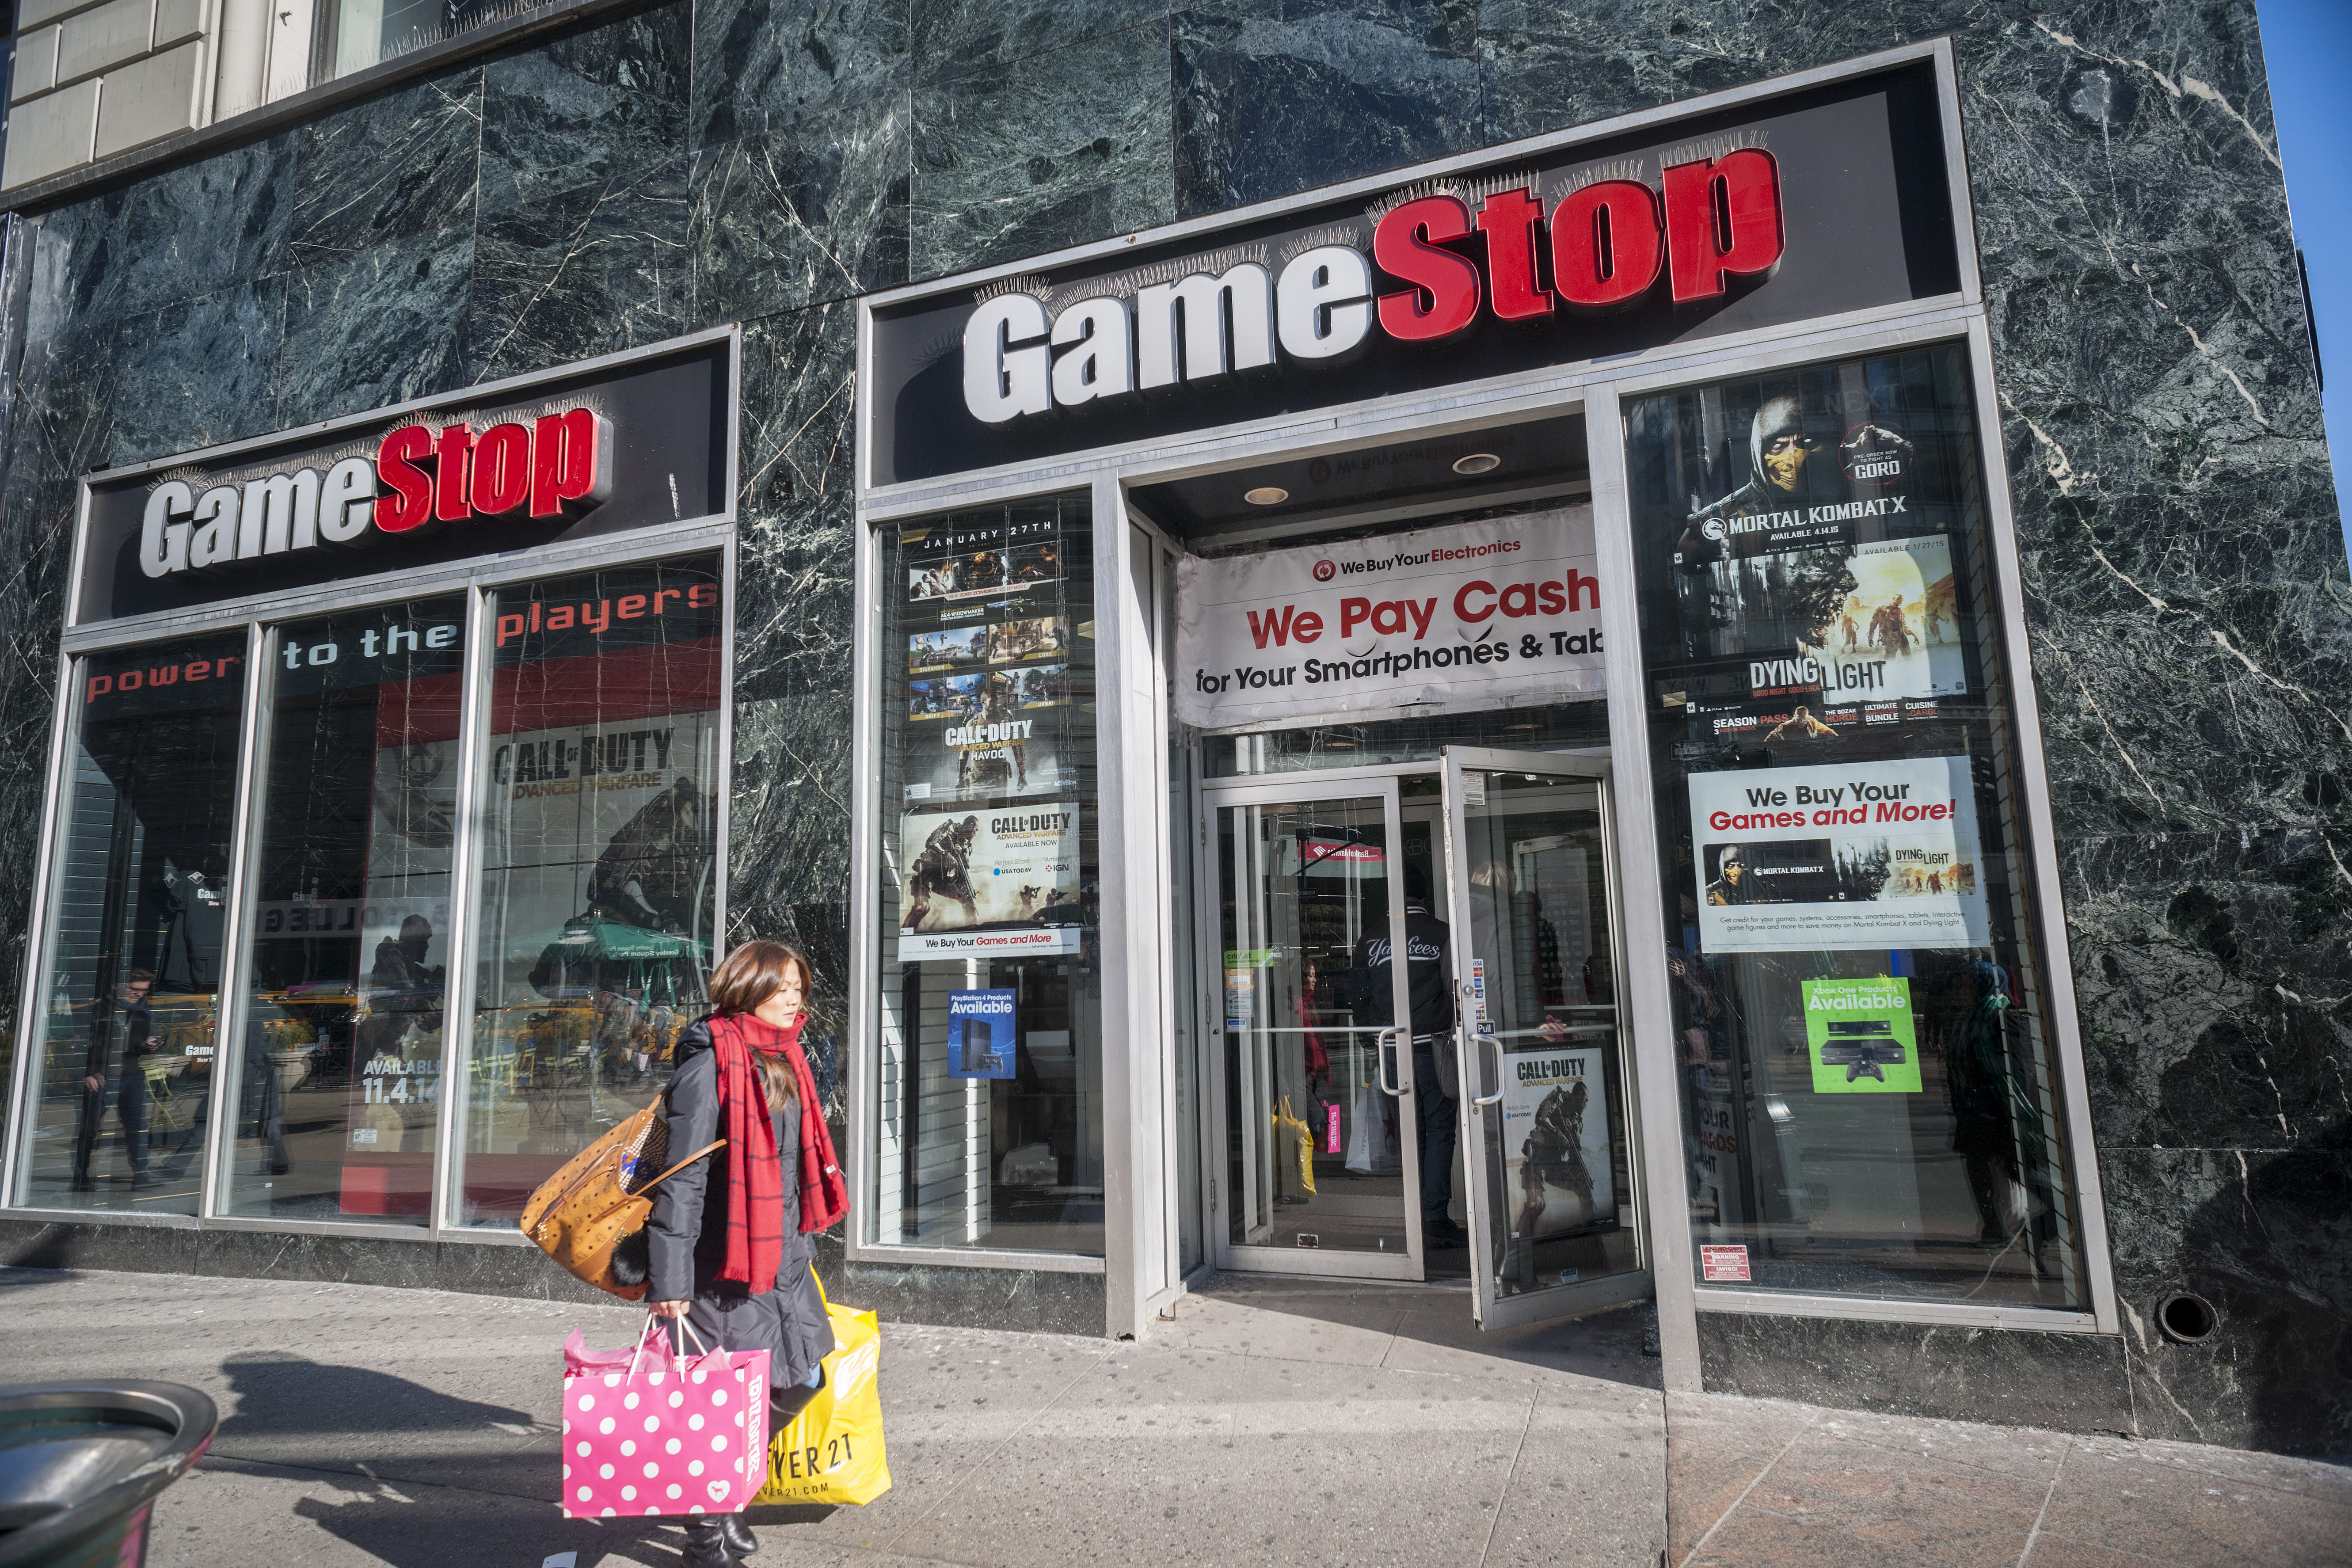 How Much Money Does GameStop Pay for Used Video Games? The amount of money GameStop pays for used video games varies by game; for example, used copies of the games